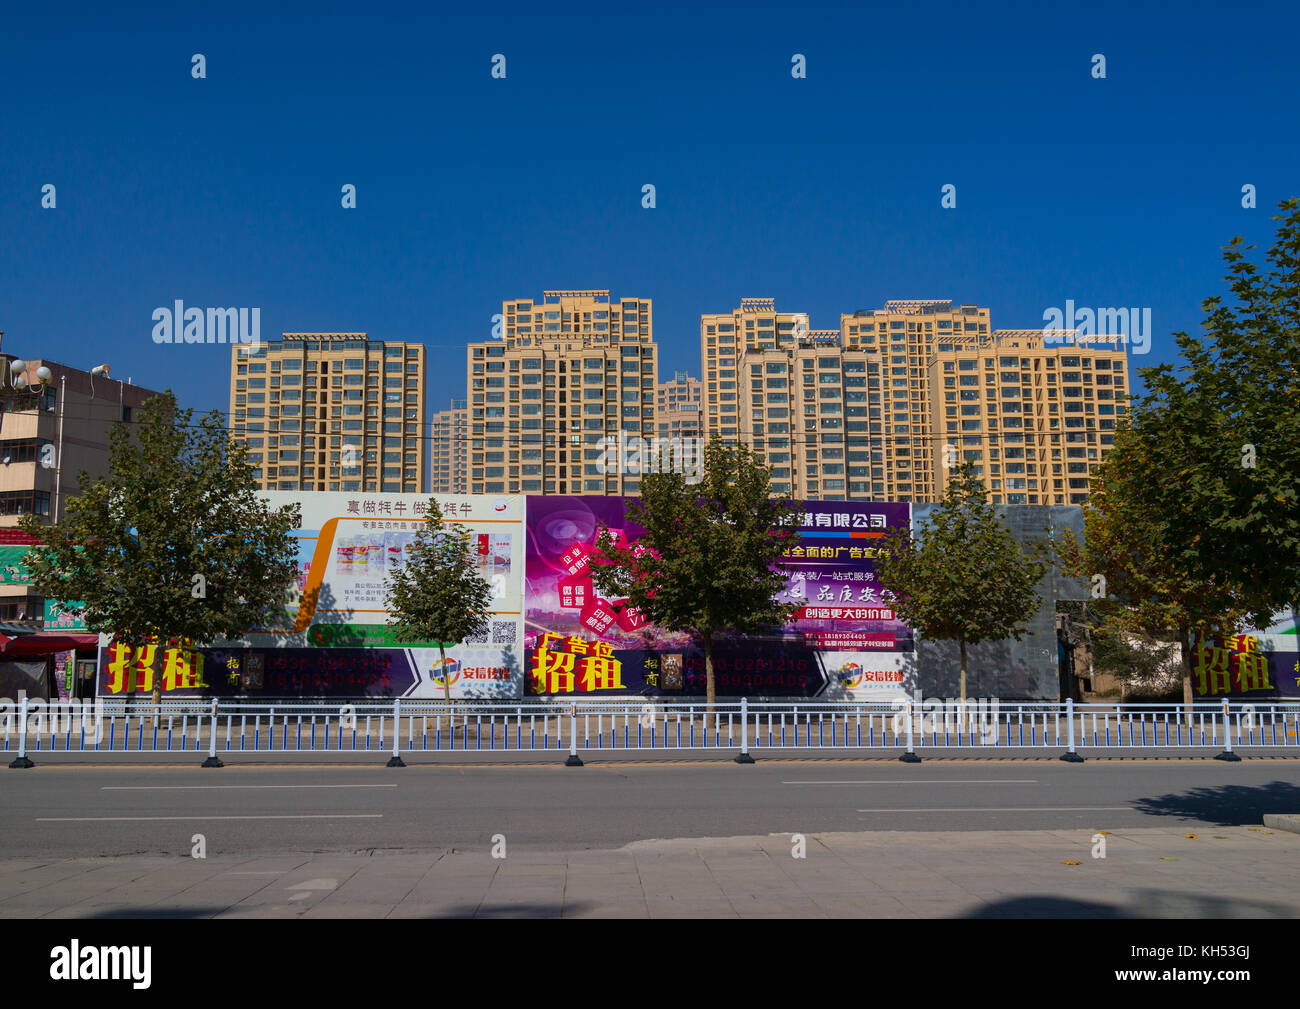 Huge advertising billboards in front of new hirise buildings, Gansu province, Linxia, China - Stock Image